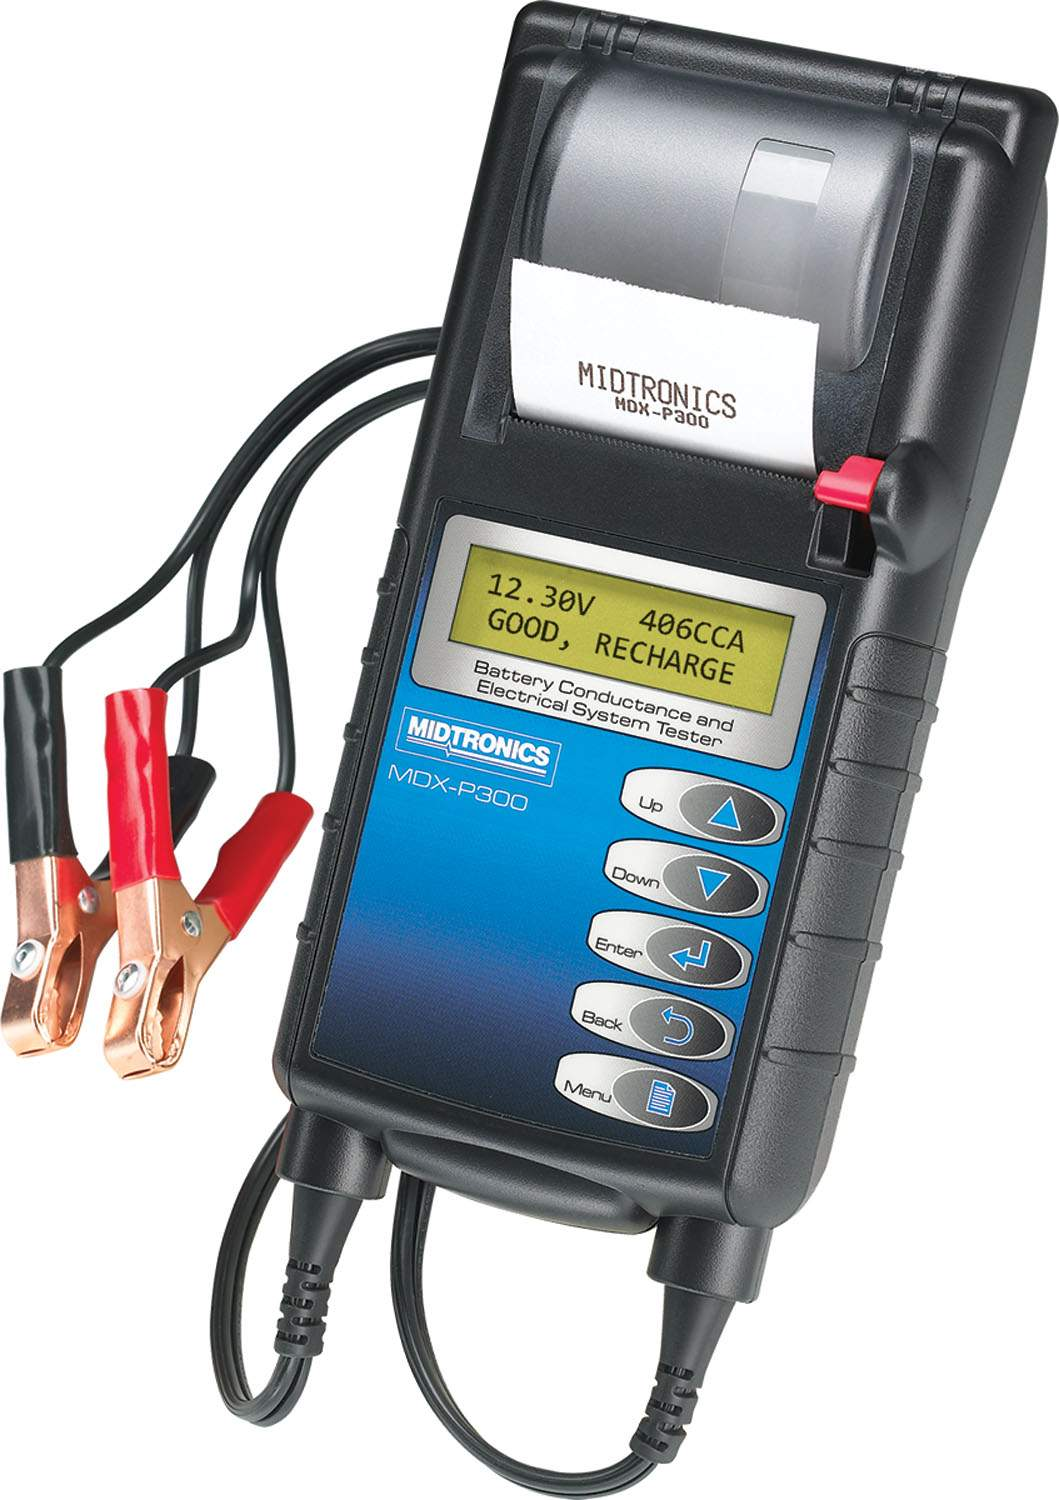 CHARGING SYSTEM ANALYZER WITH PRINTER MDTMDX-P300 | Tool Discounter